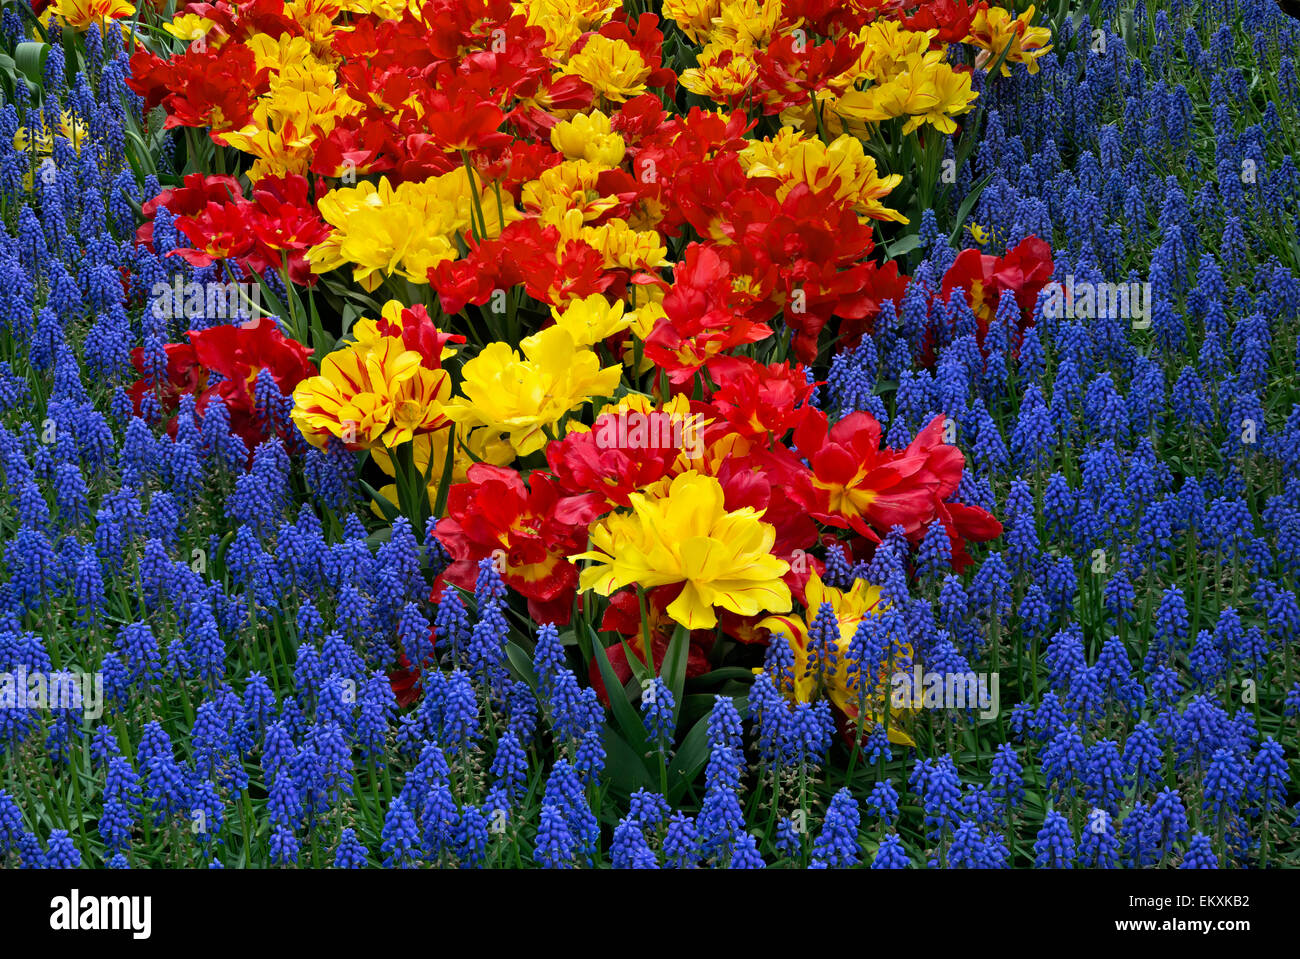 Flower Bed Tulips Hyacinths In Stock Photos & Flower Bed Tulips ...